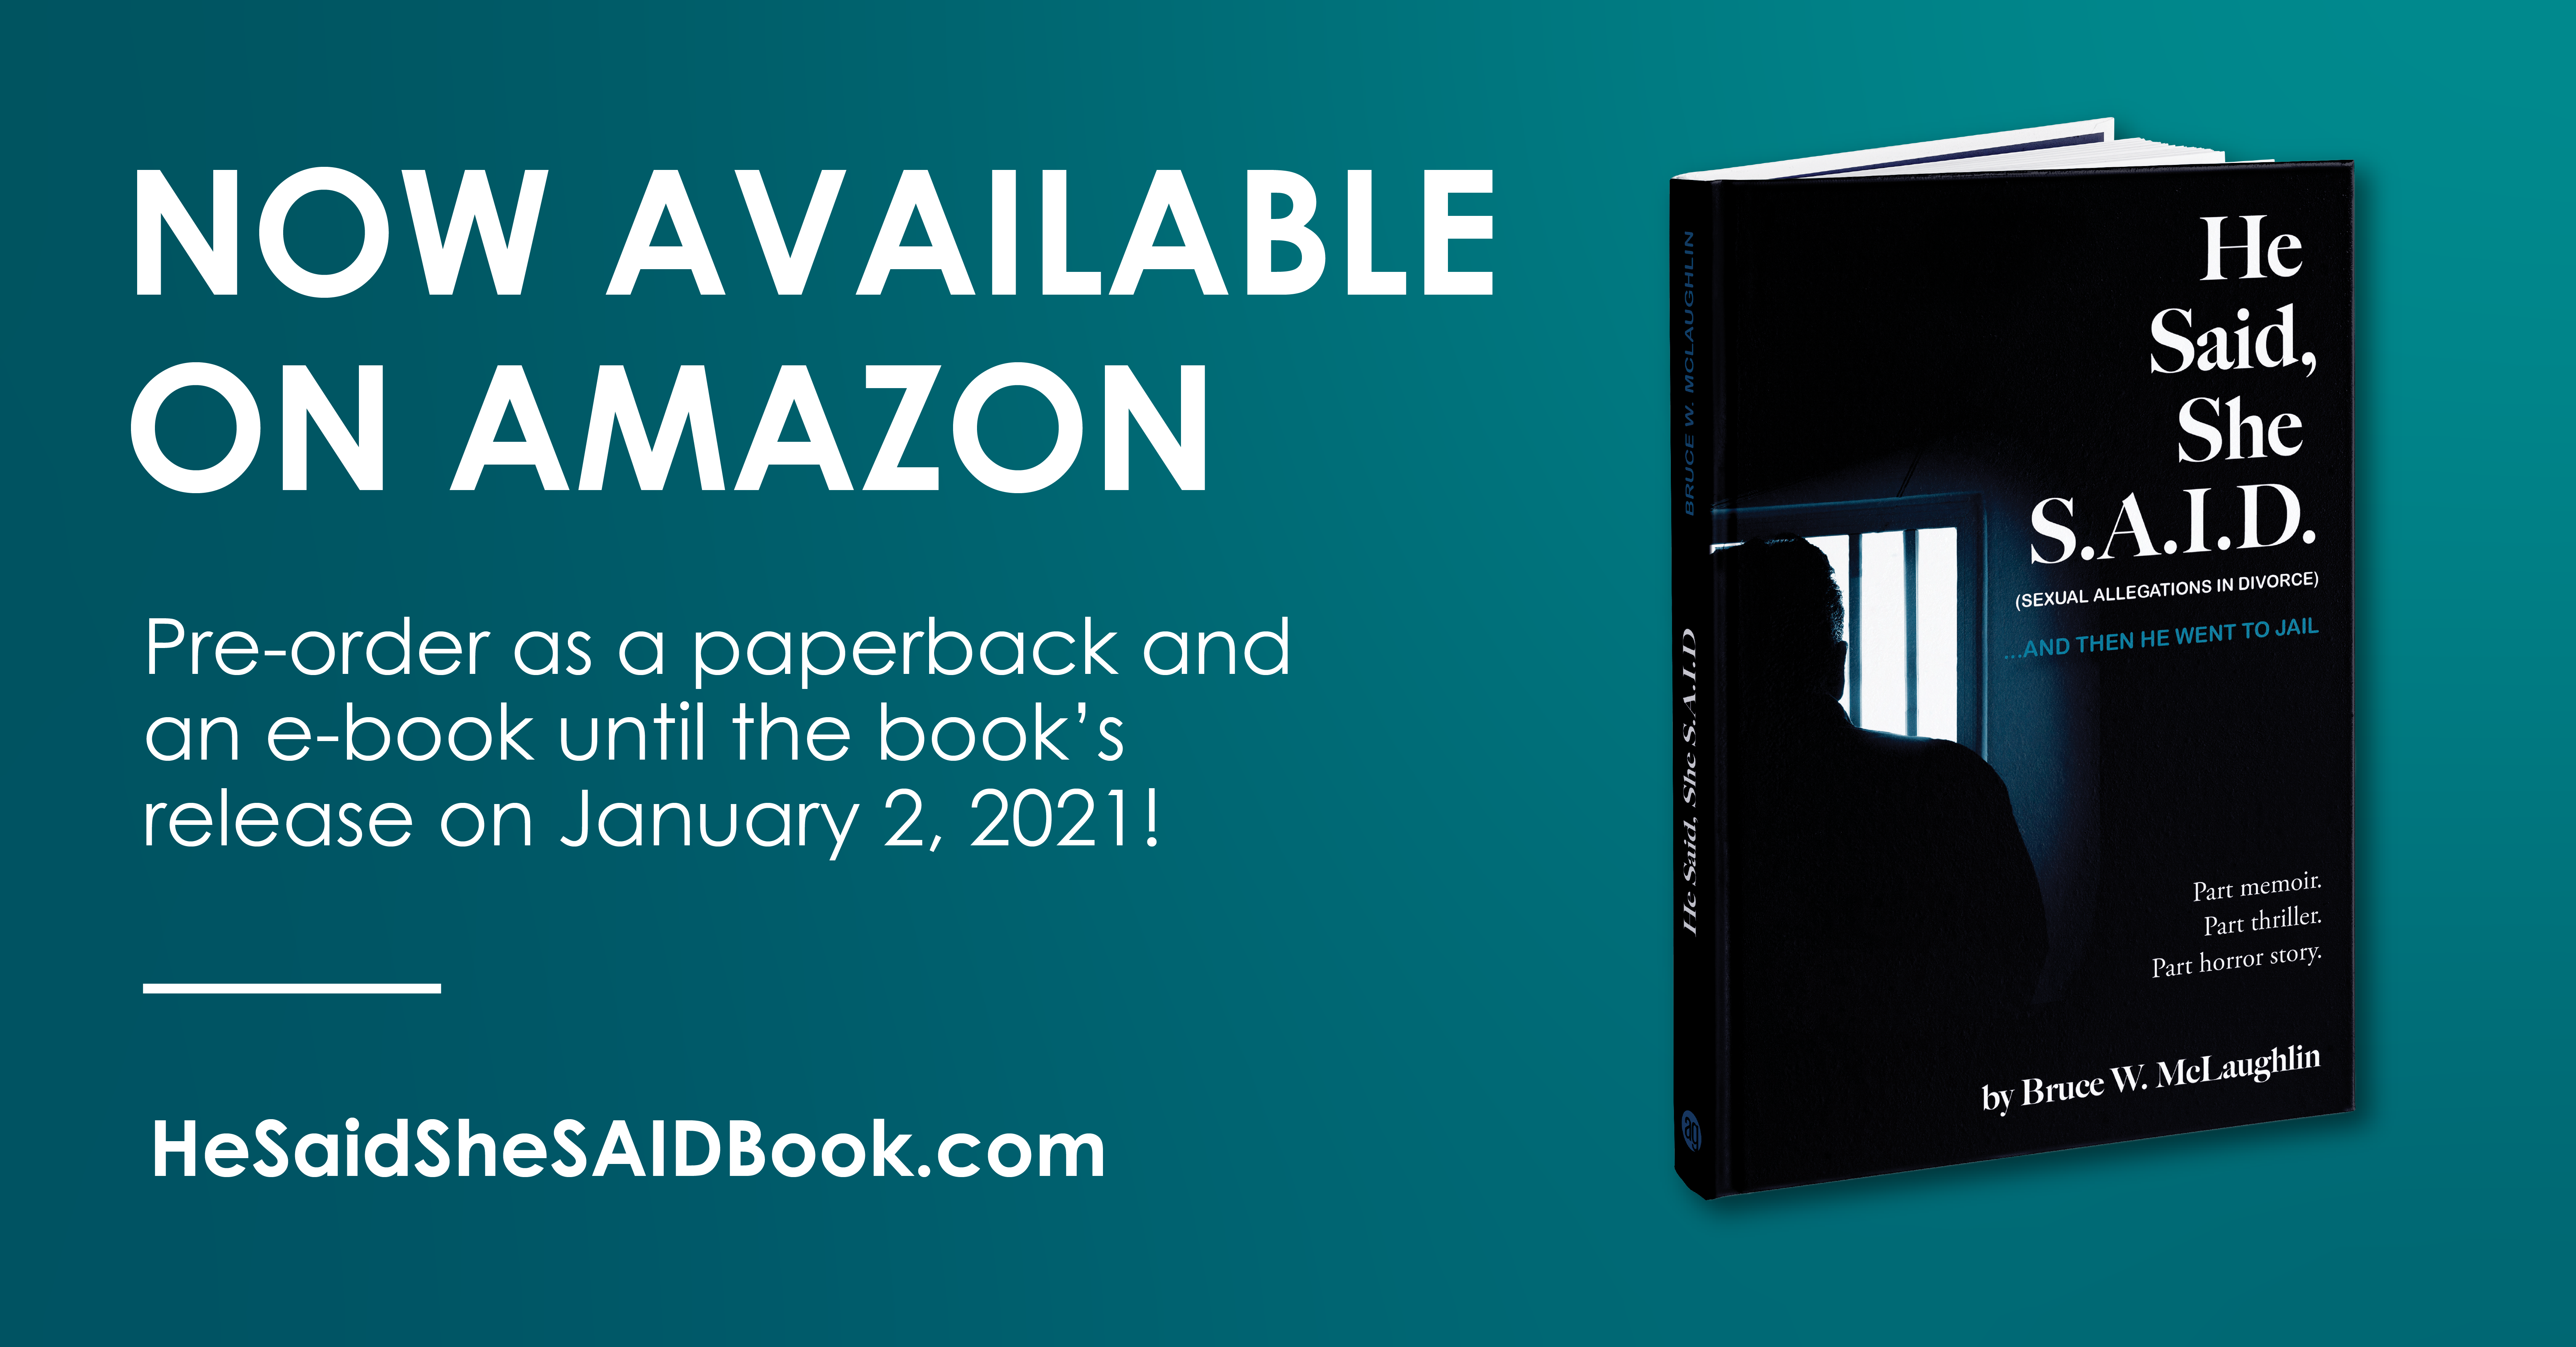 My Book is Available on Amazon!